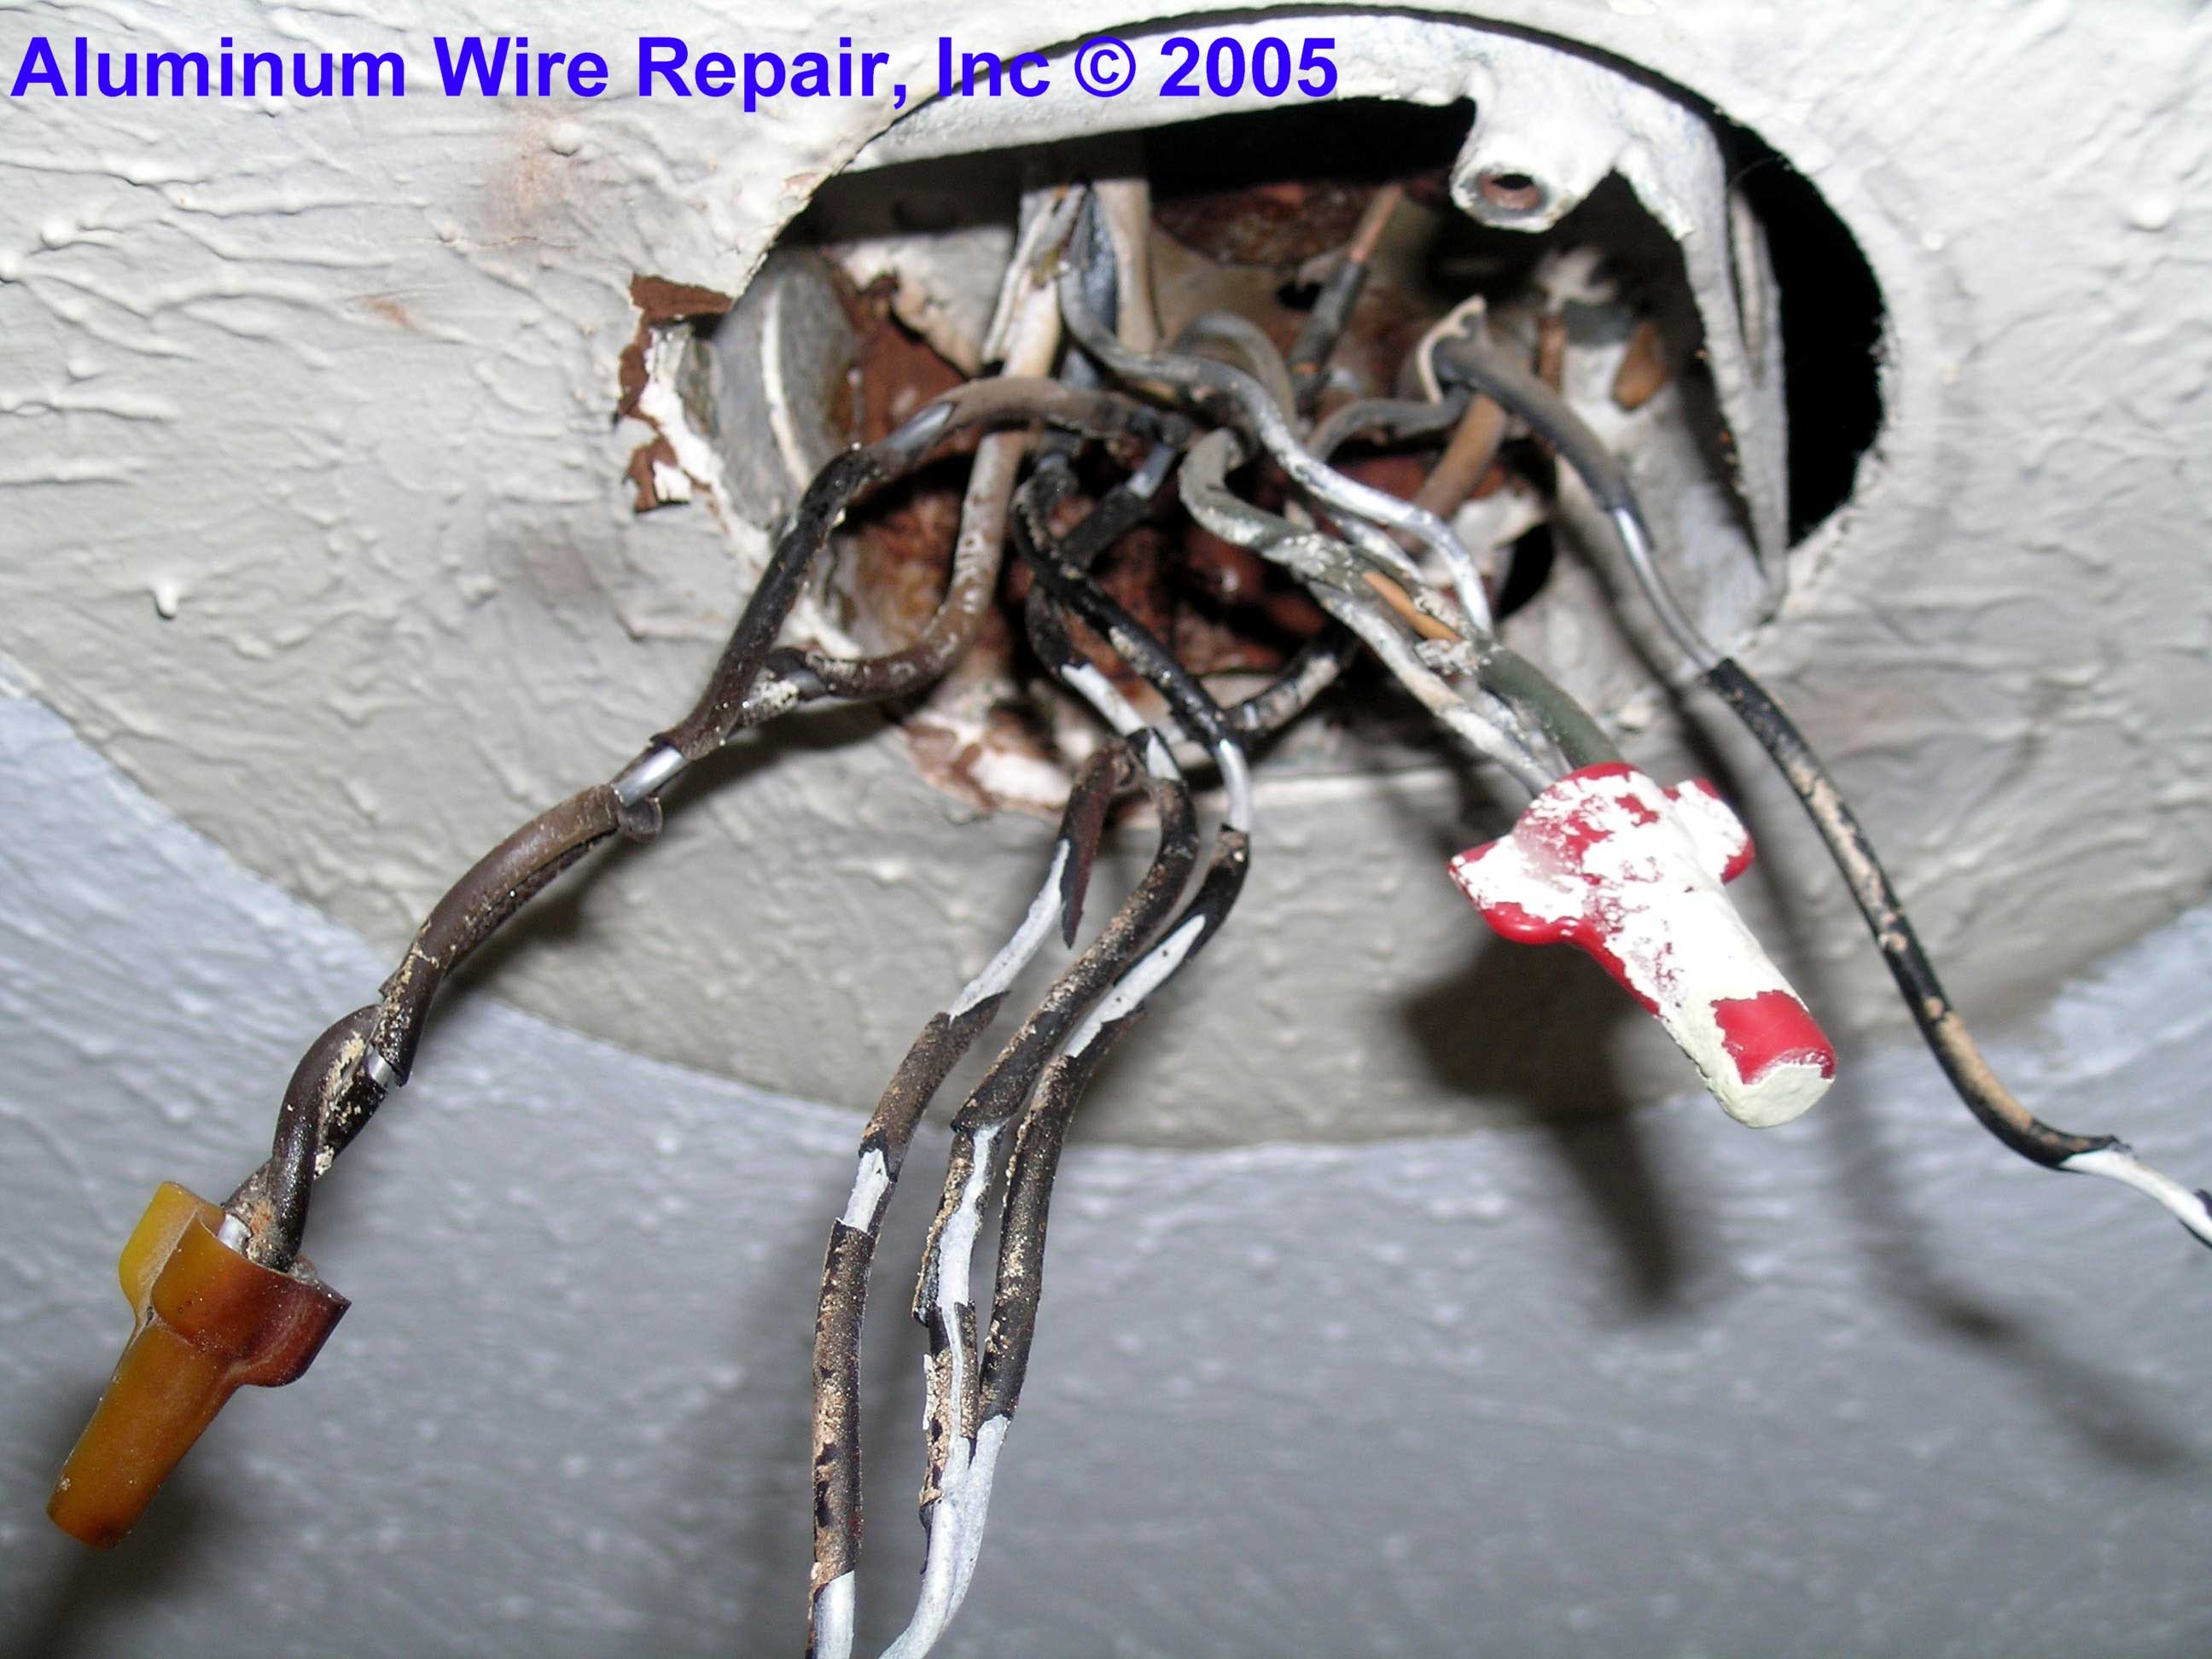 Old Aluminum Electrical Wiring - Find Wiring Diagram •